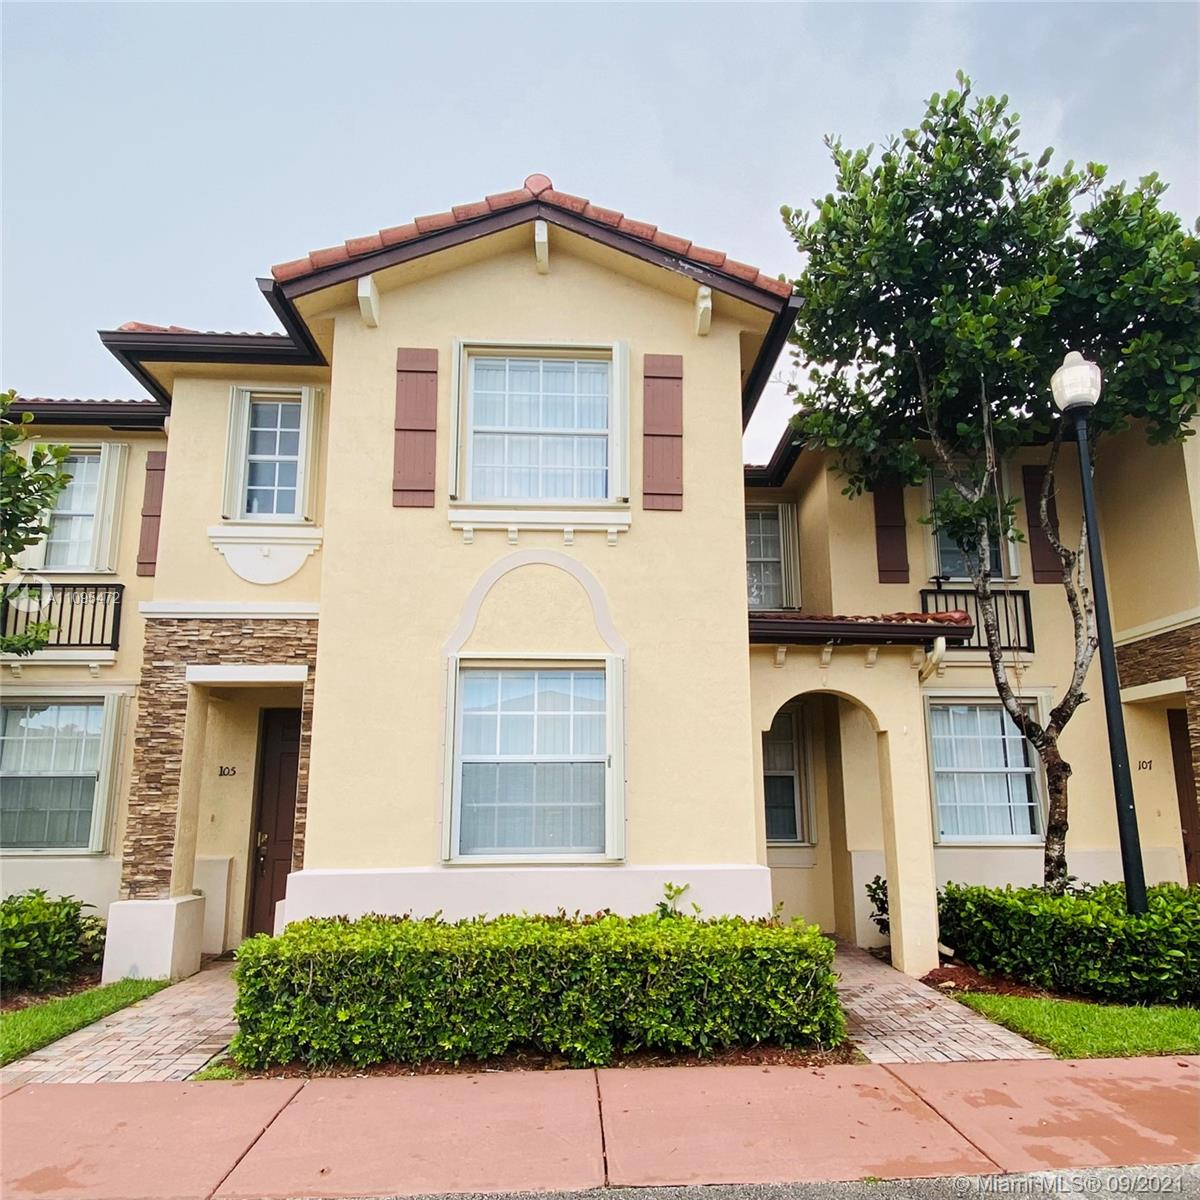 Townhouse for rent in Malibu Bay Community (Villas of Carmel) 3 bedrooms and 2.5 bathrooms. Title floors, fence yard, Salinas model. 30 days association approval . Gated community with a resort  club house . Excellent location in Homestead . Easy to show